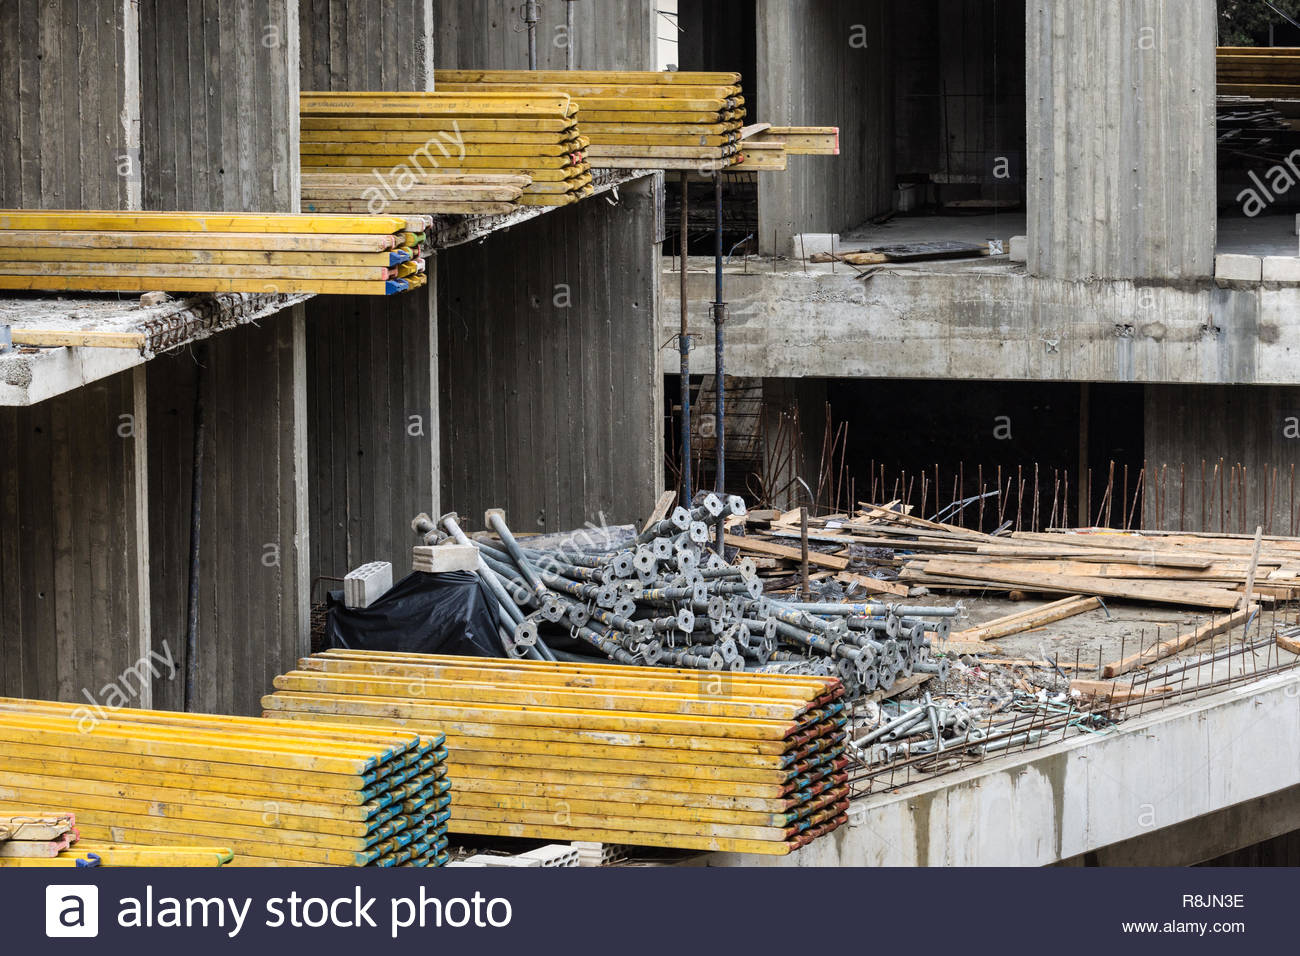 Steel props and wooden joists left in a building under construction, Lebanon - Stock Image